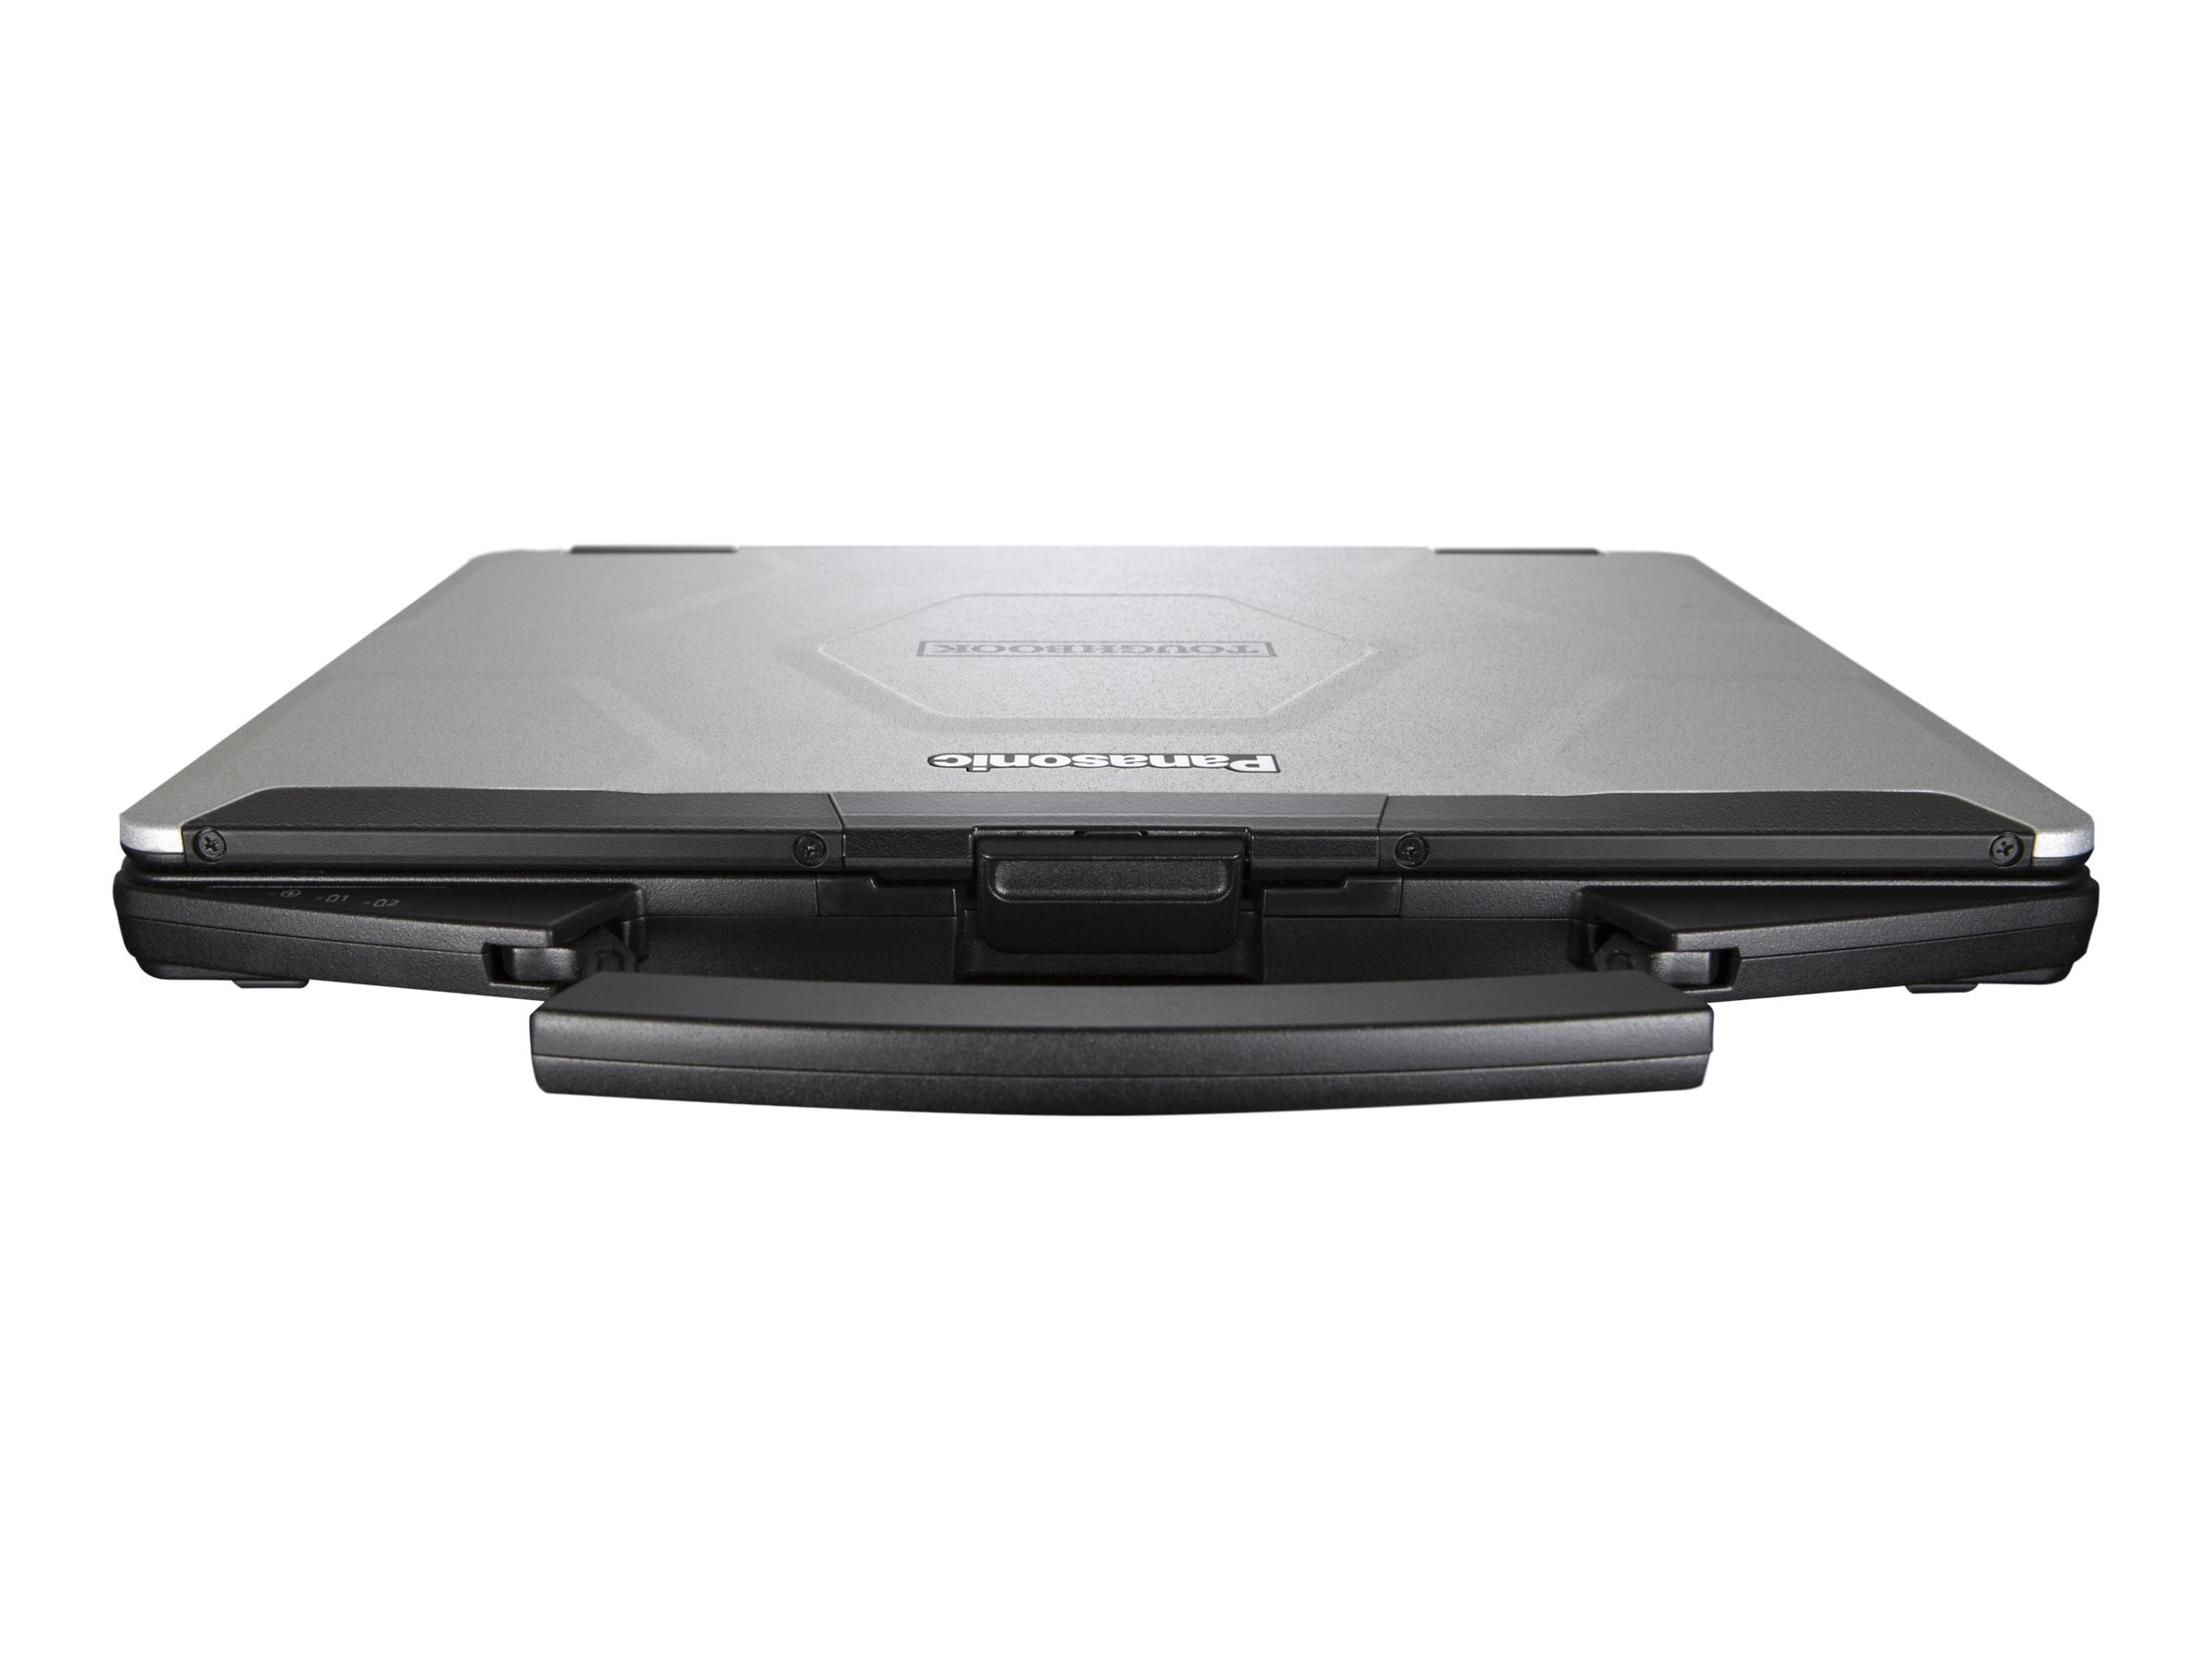 Panasonic Toughbook 54 16GB 14 FHD, CF-54FP090VM